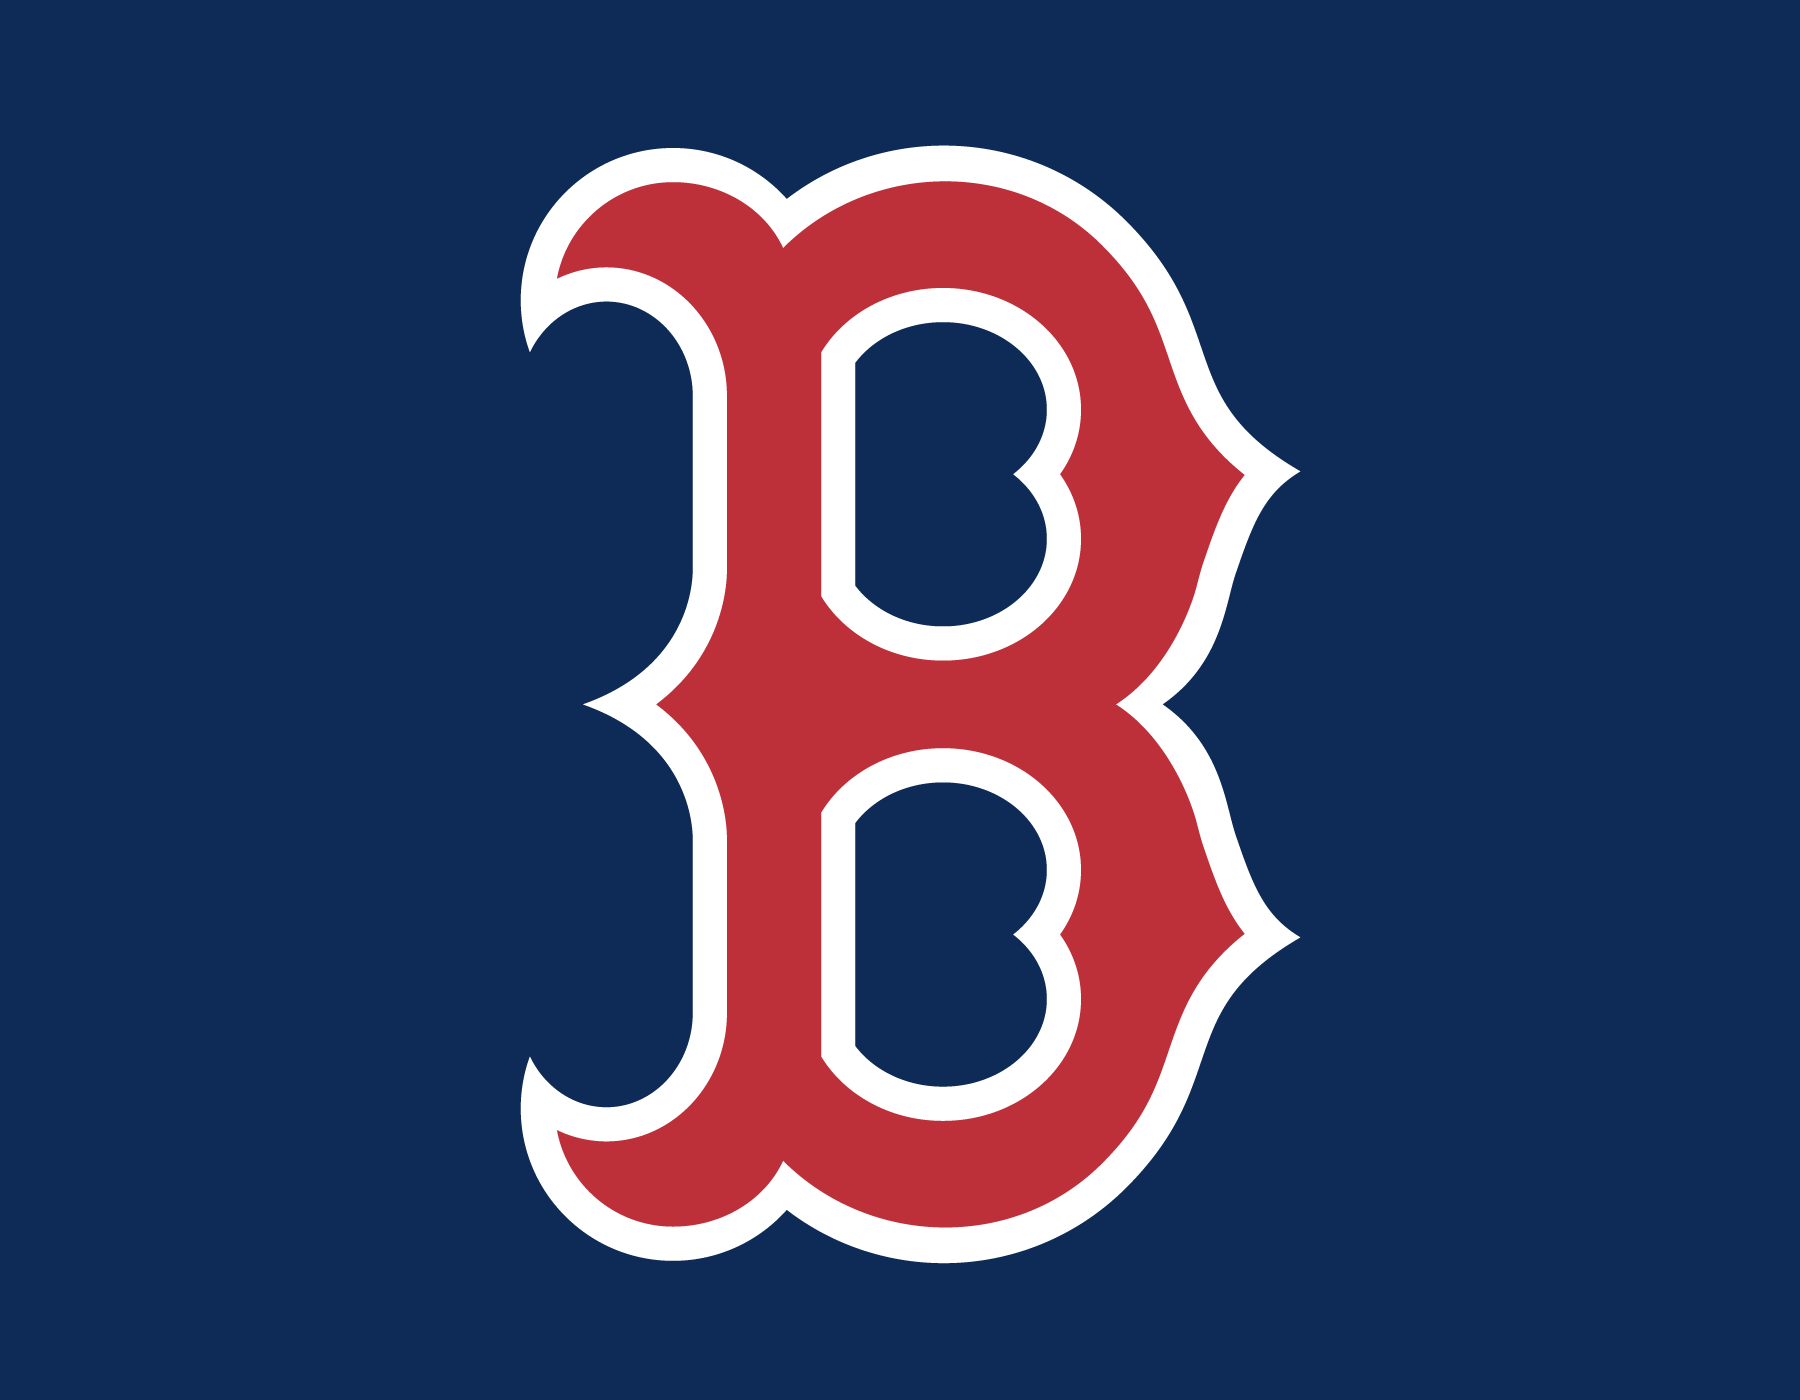 Boston Red Sox Logo Png Transparent Svg Vector Freebie Supply Boston Red Sox Logo Red Sox Logo Boston Red